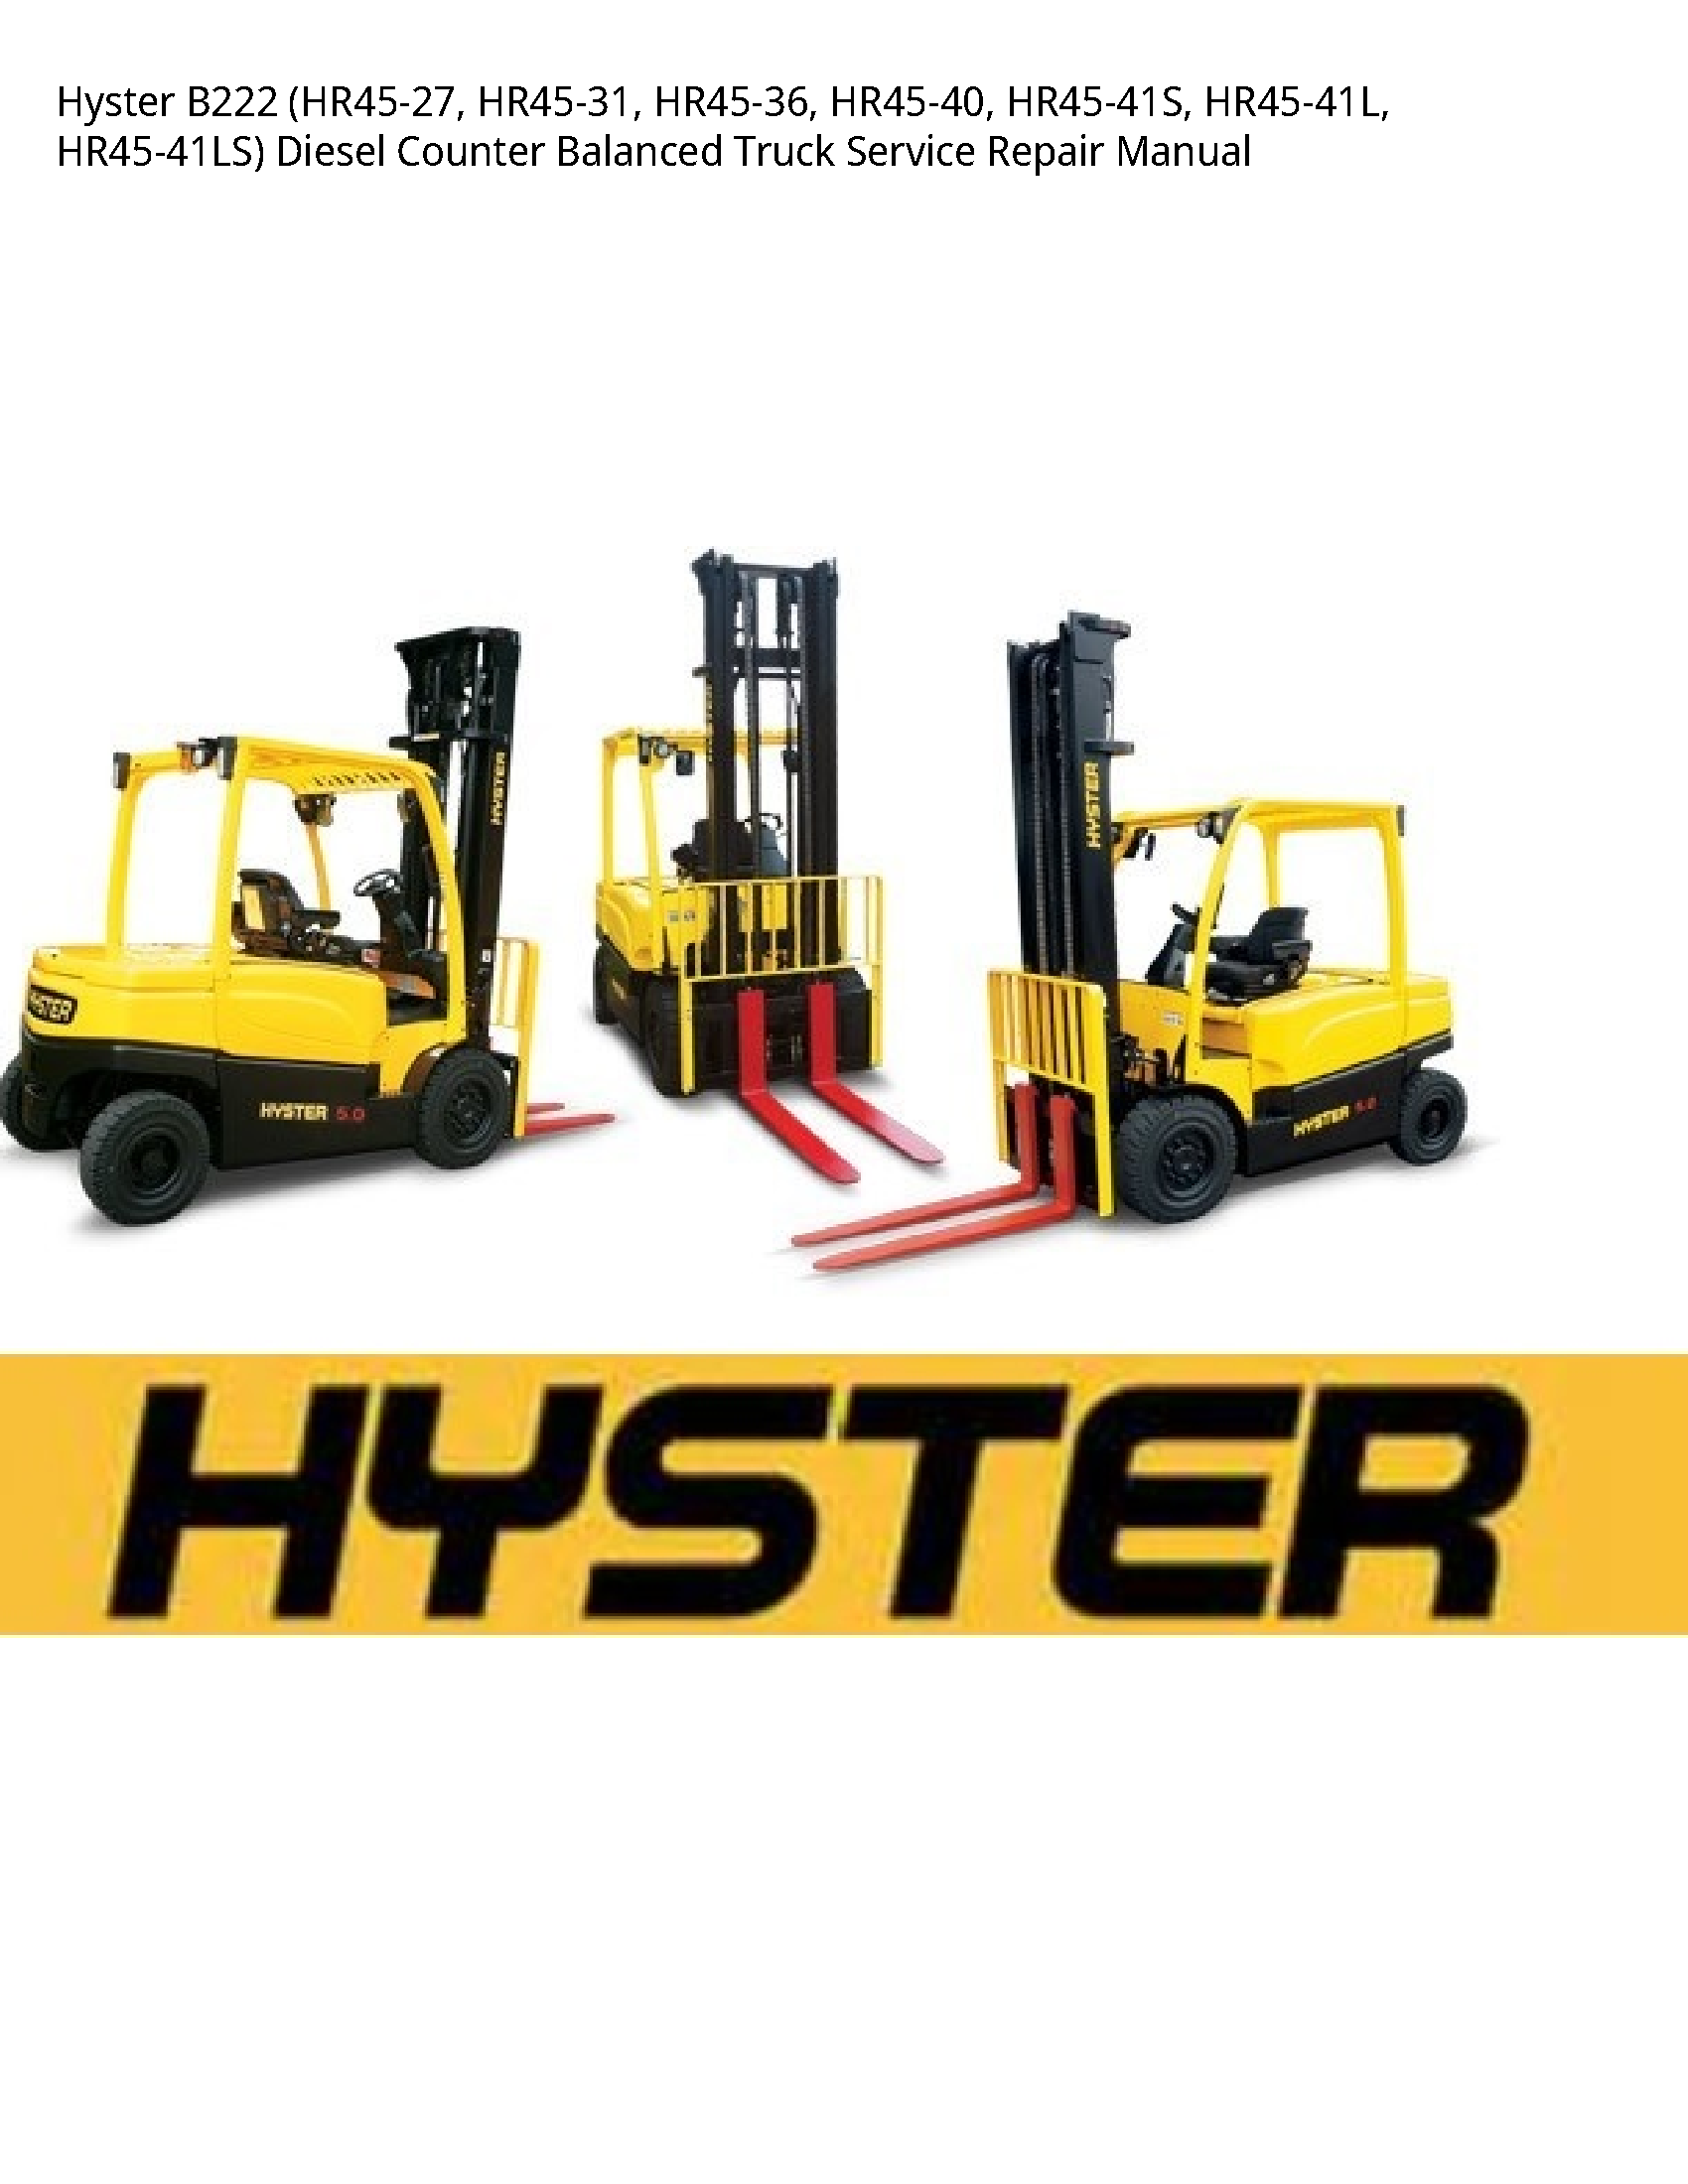 Hyster B222 Diesel Counter Balanced Truck manual